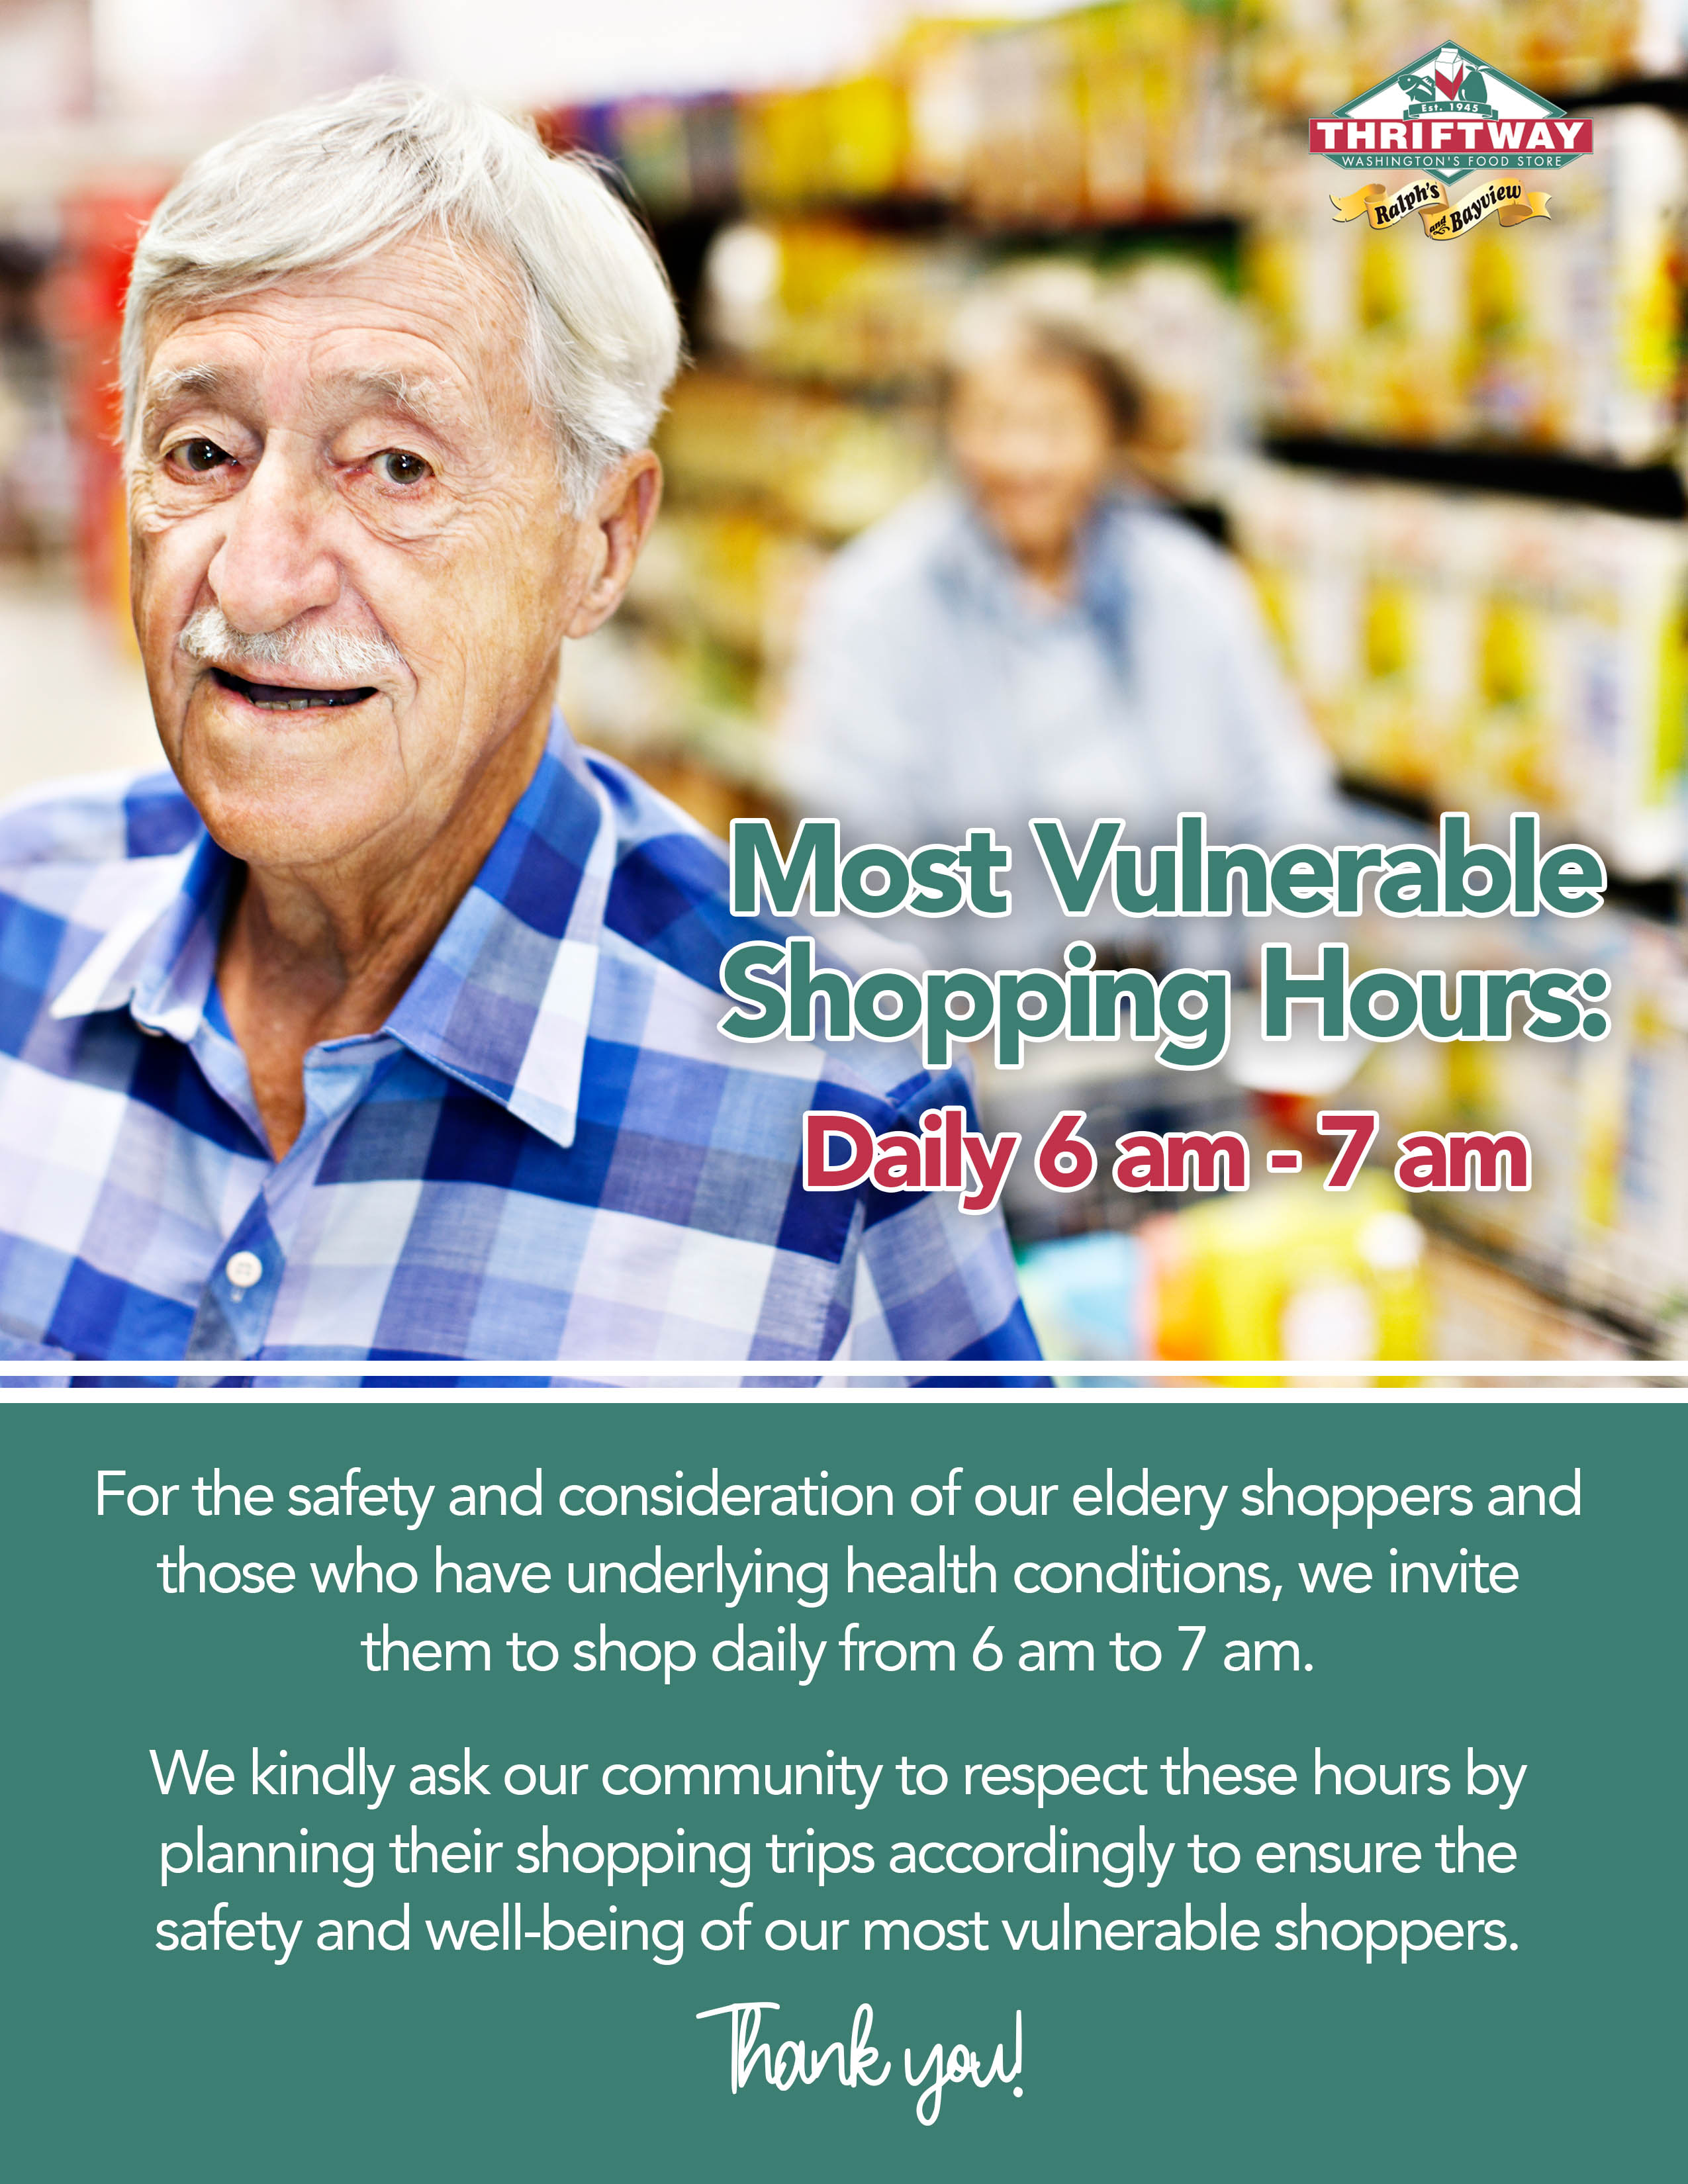 Most Vulnerable Shopping Hours: Daily 6am-7am. For the safety and consideration of our elderly shoppers and those who have underlying health conditions, we invite them to shop daily from 6am to 7am. We kindly ask our community to respect these hours by planning their shopping trips accordingly to ensure the safety and well-being of our most vulnerable shoppers. Thank you!